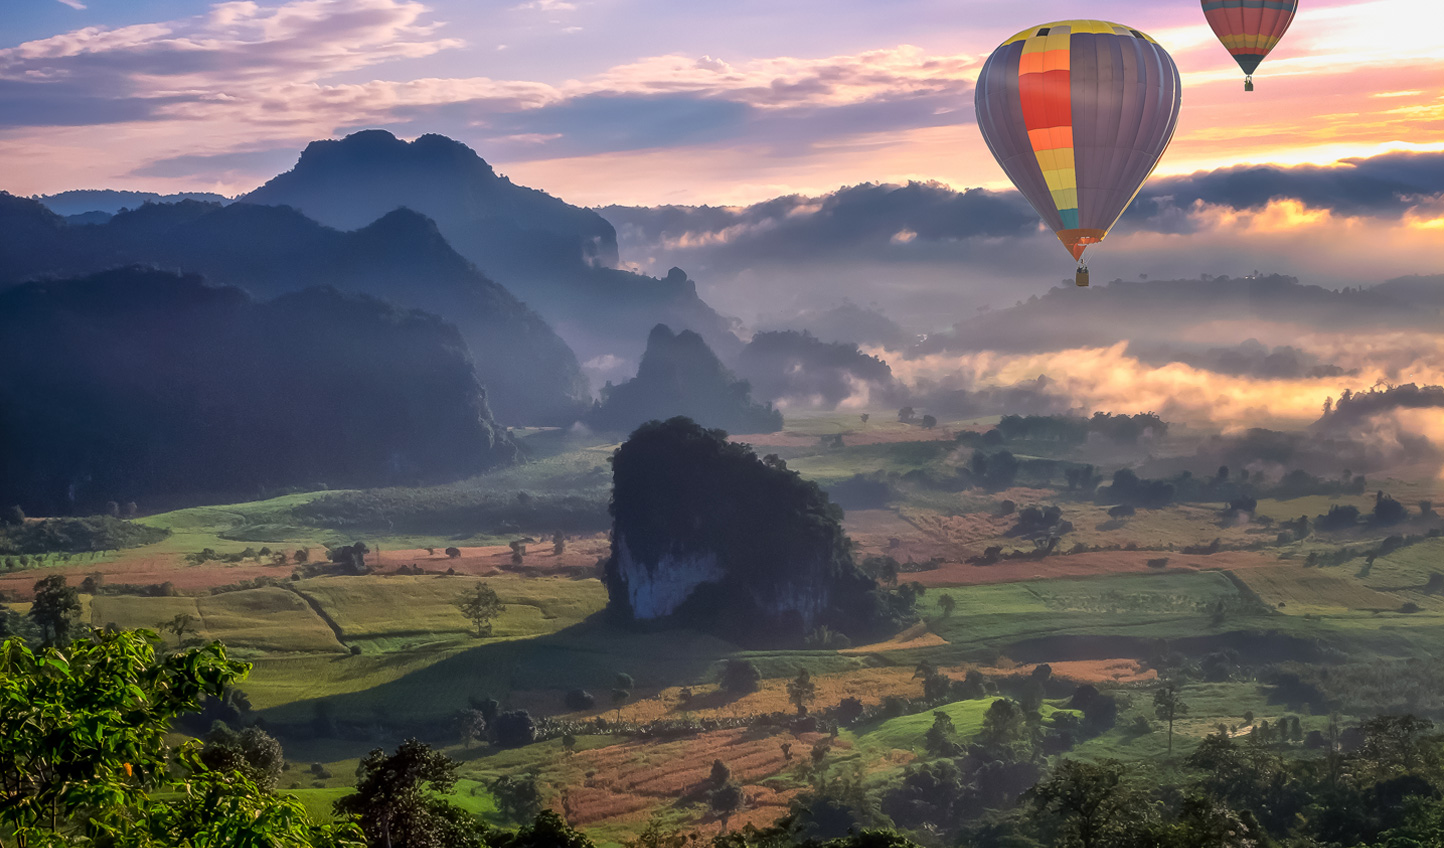 There's no better place to view Thailand than from above in a hot air balloon at sunset